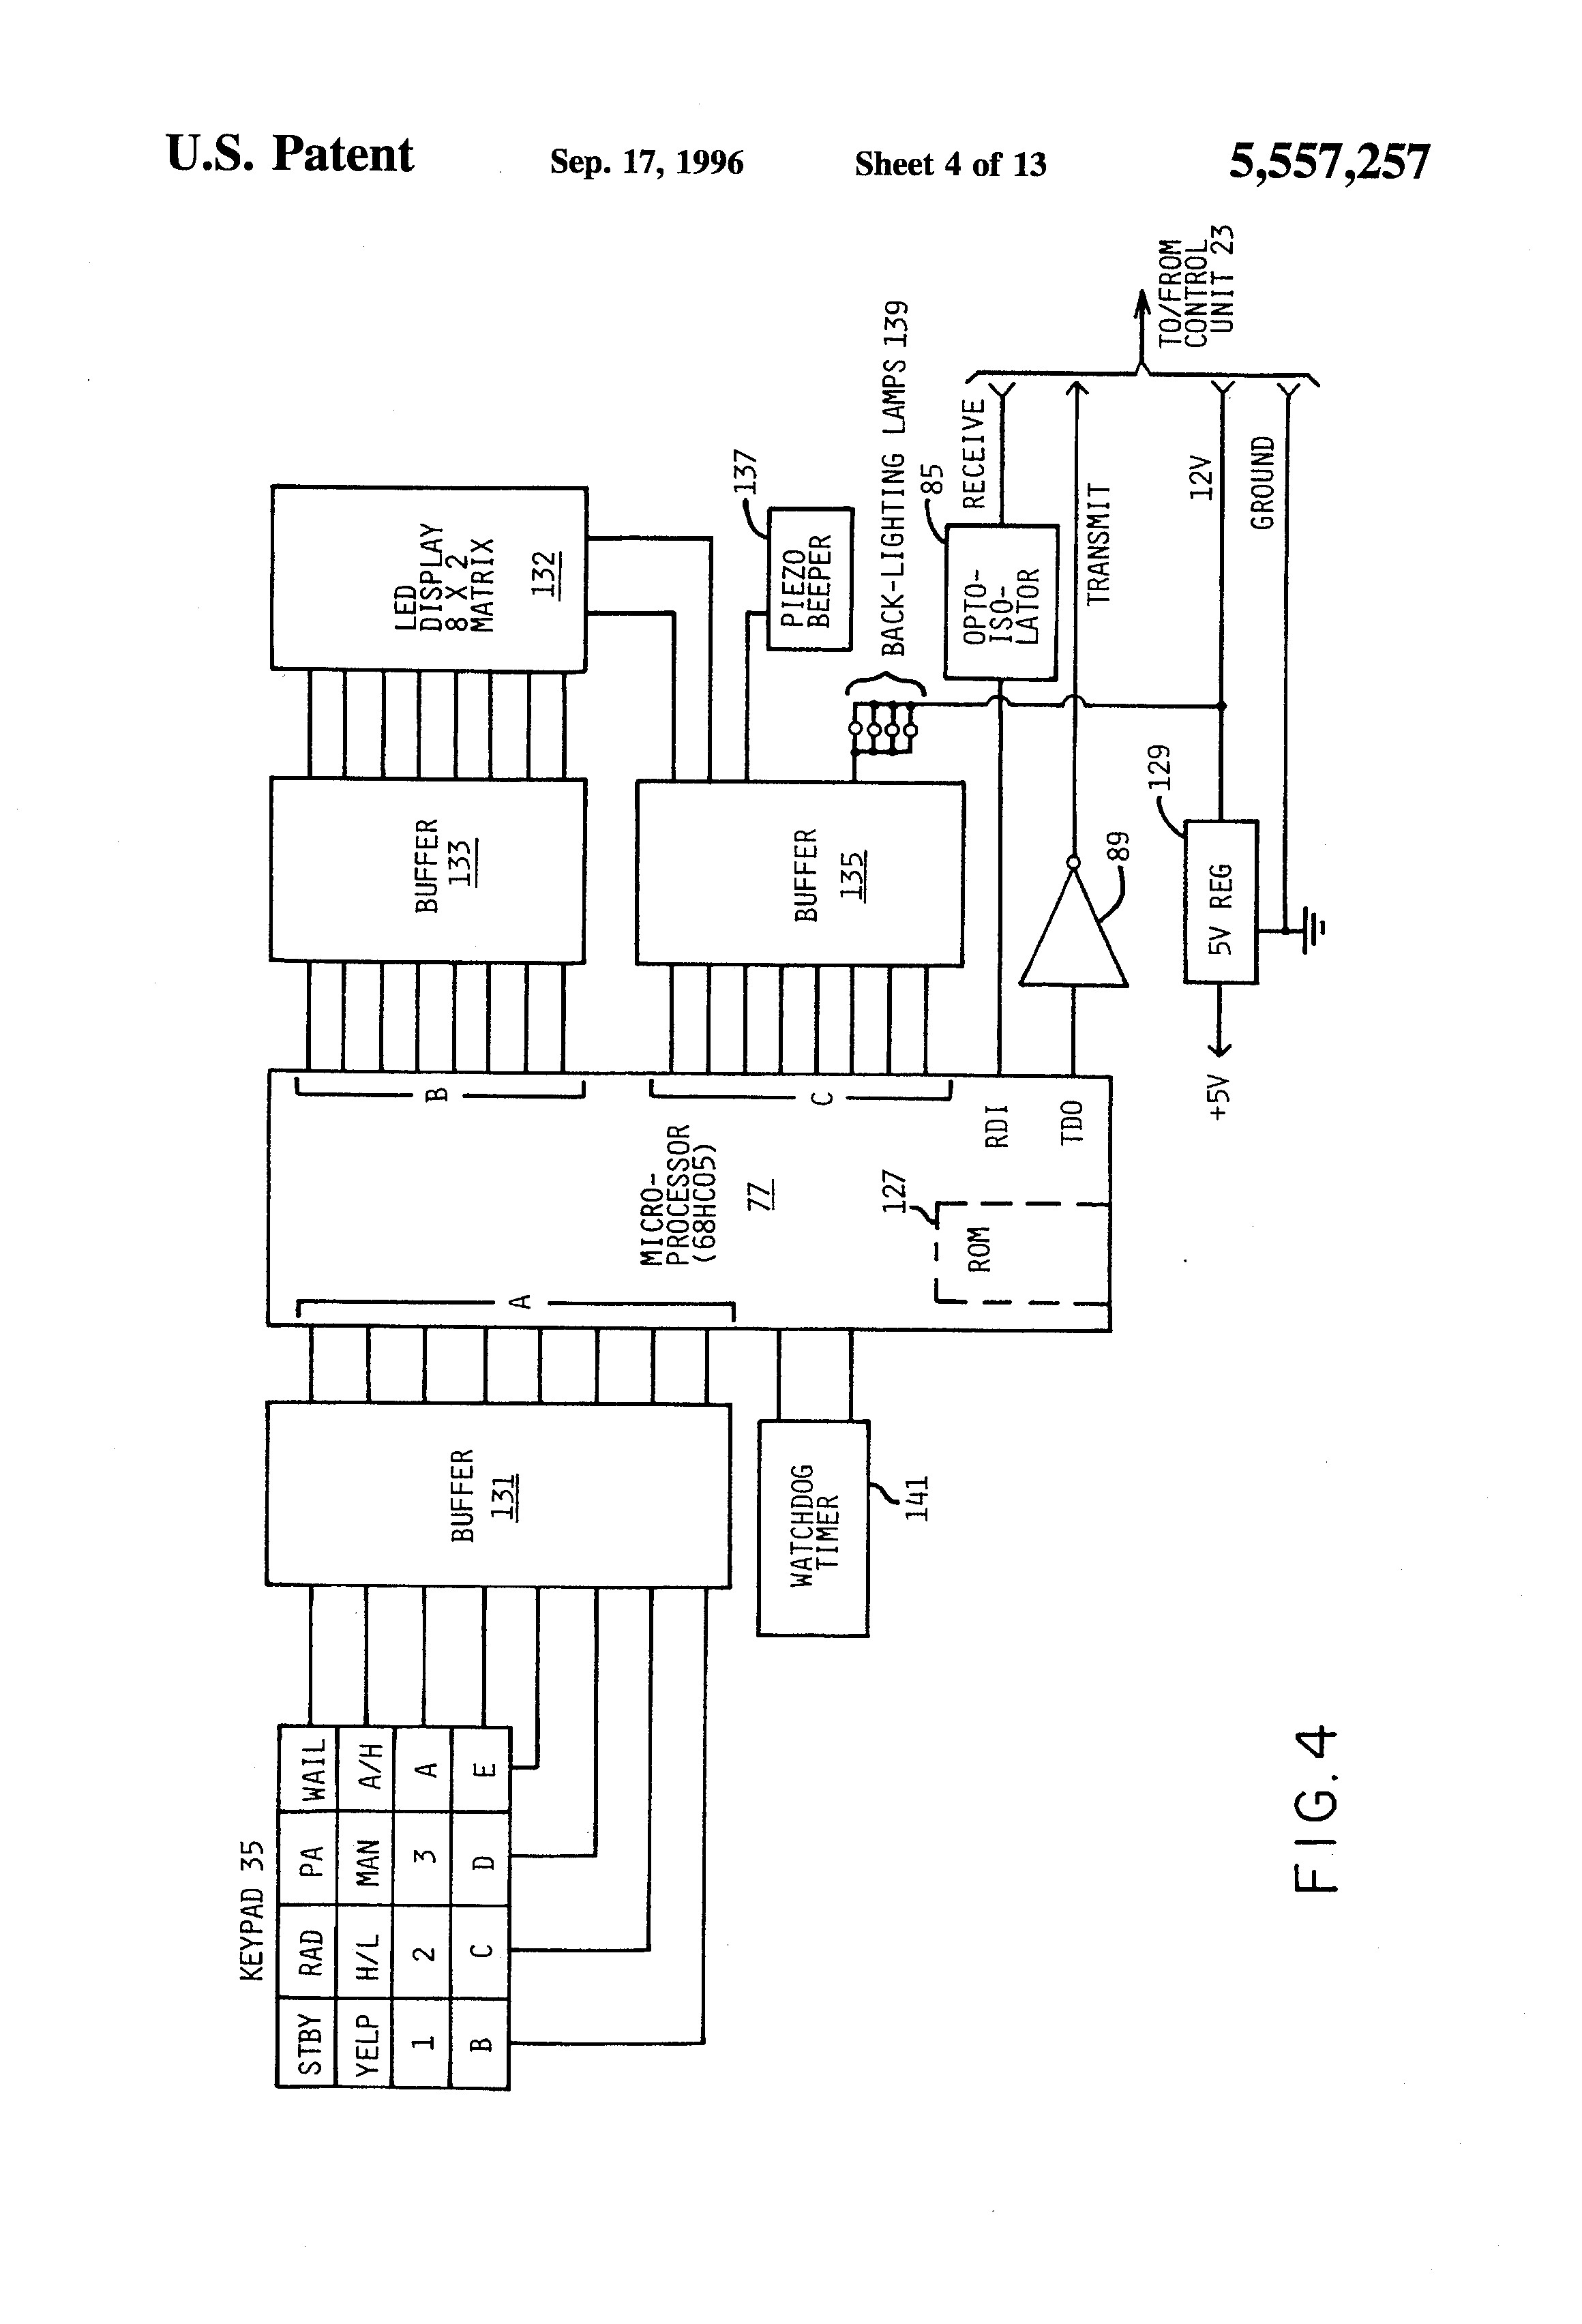 Federal Signal Corporation Pa300 Wiring Diagram - Allove - Federal Signal Pa300 Wiring Diagram